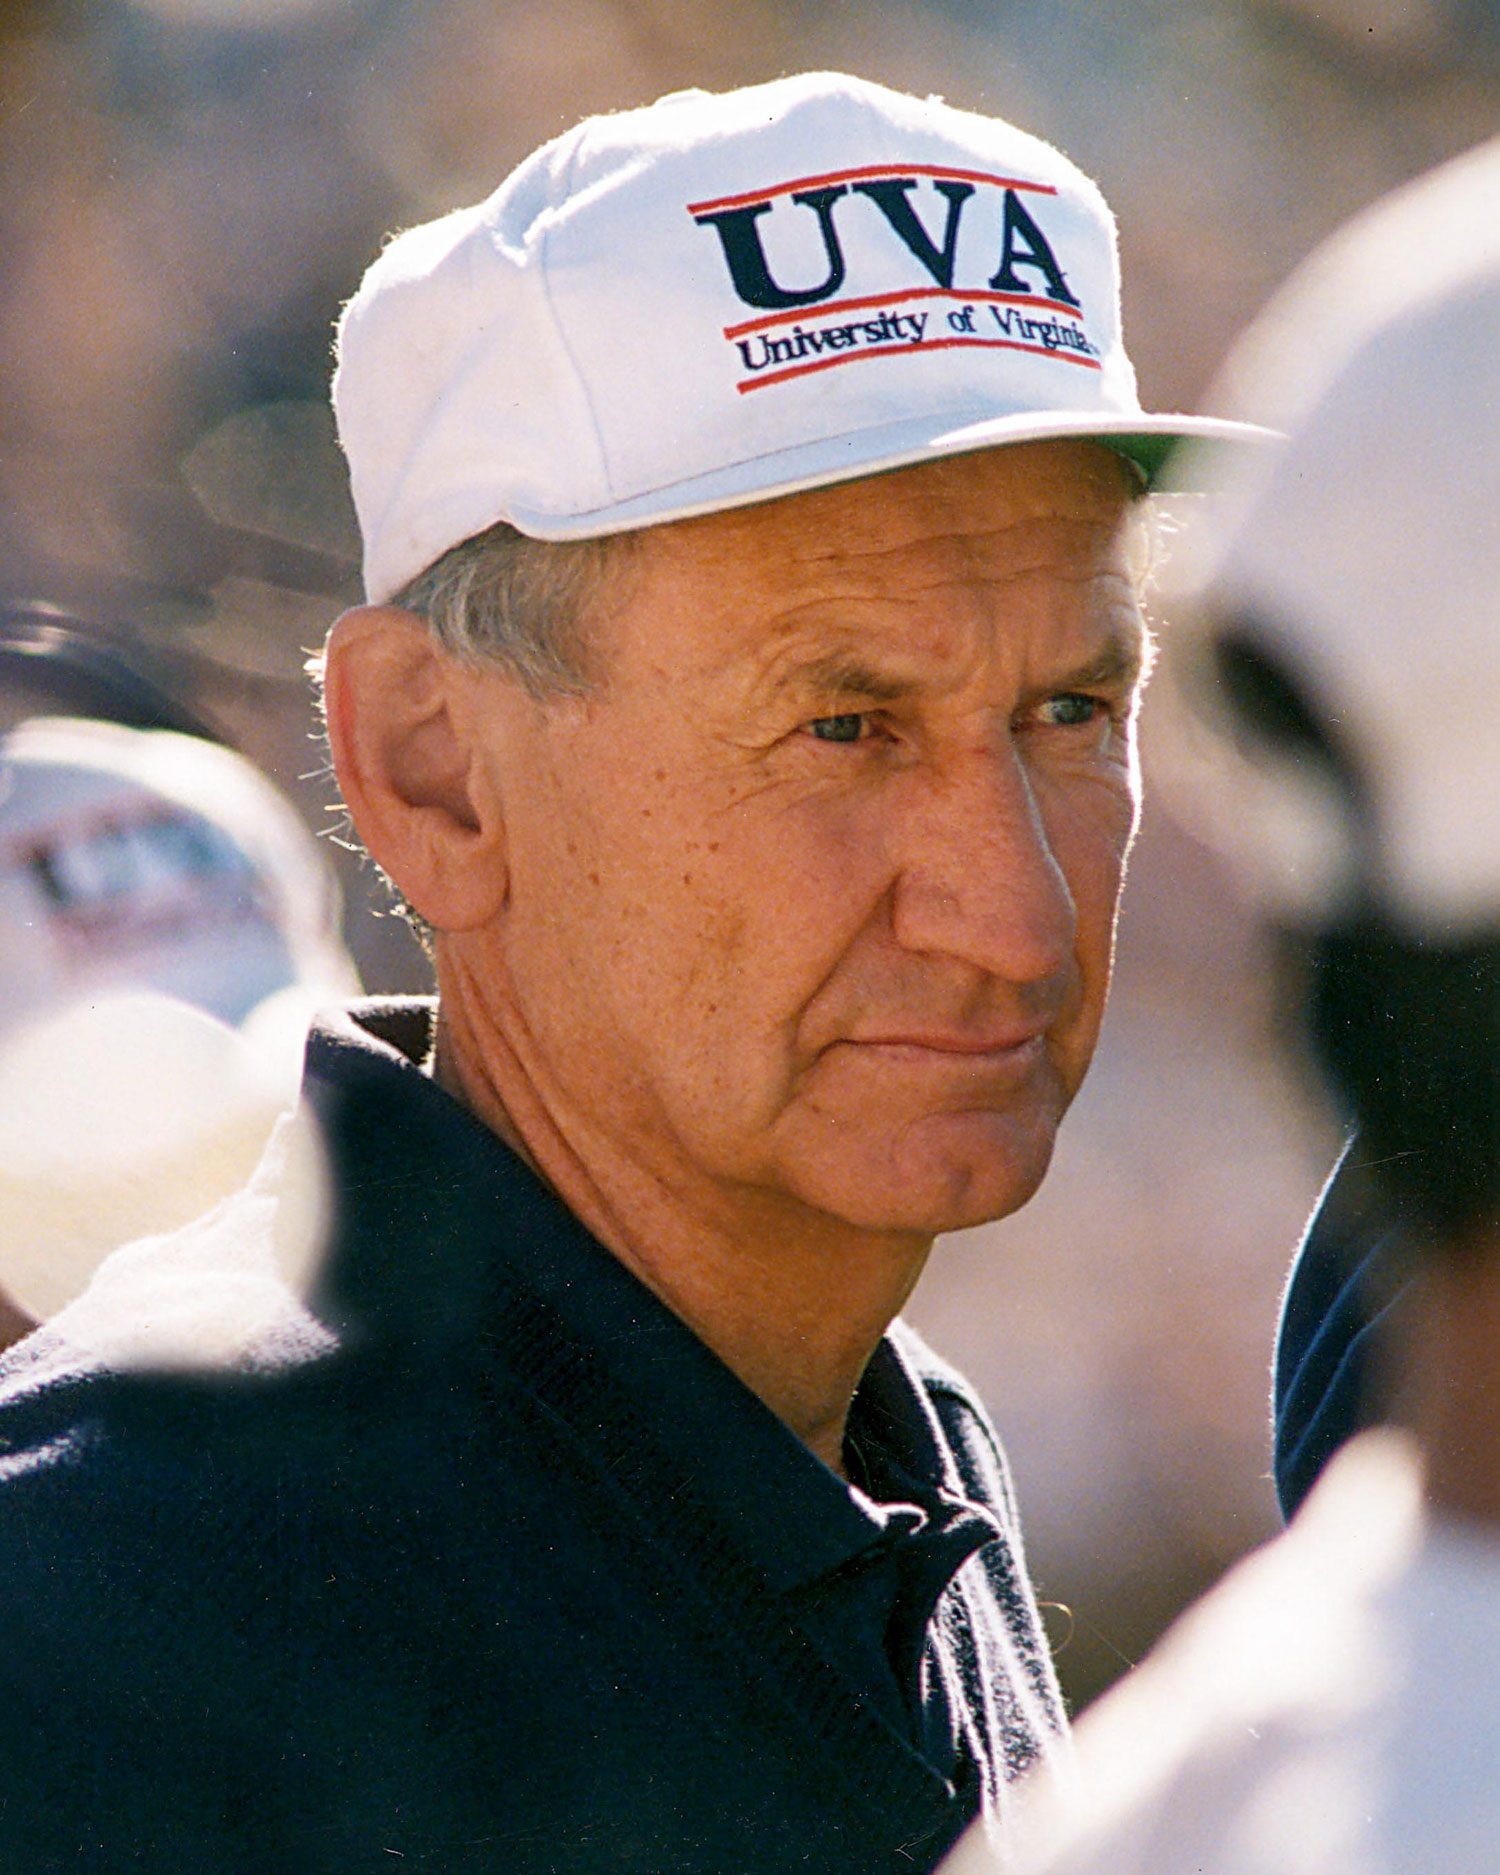 George Welsh in 1982, shortly after beginning his tenure at UVA.